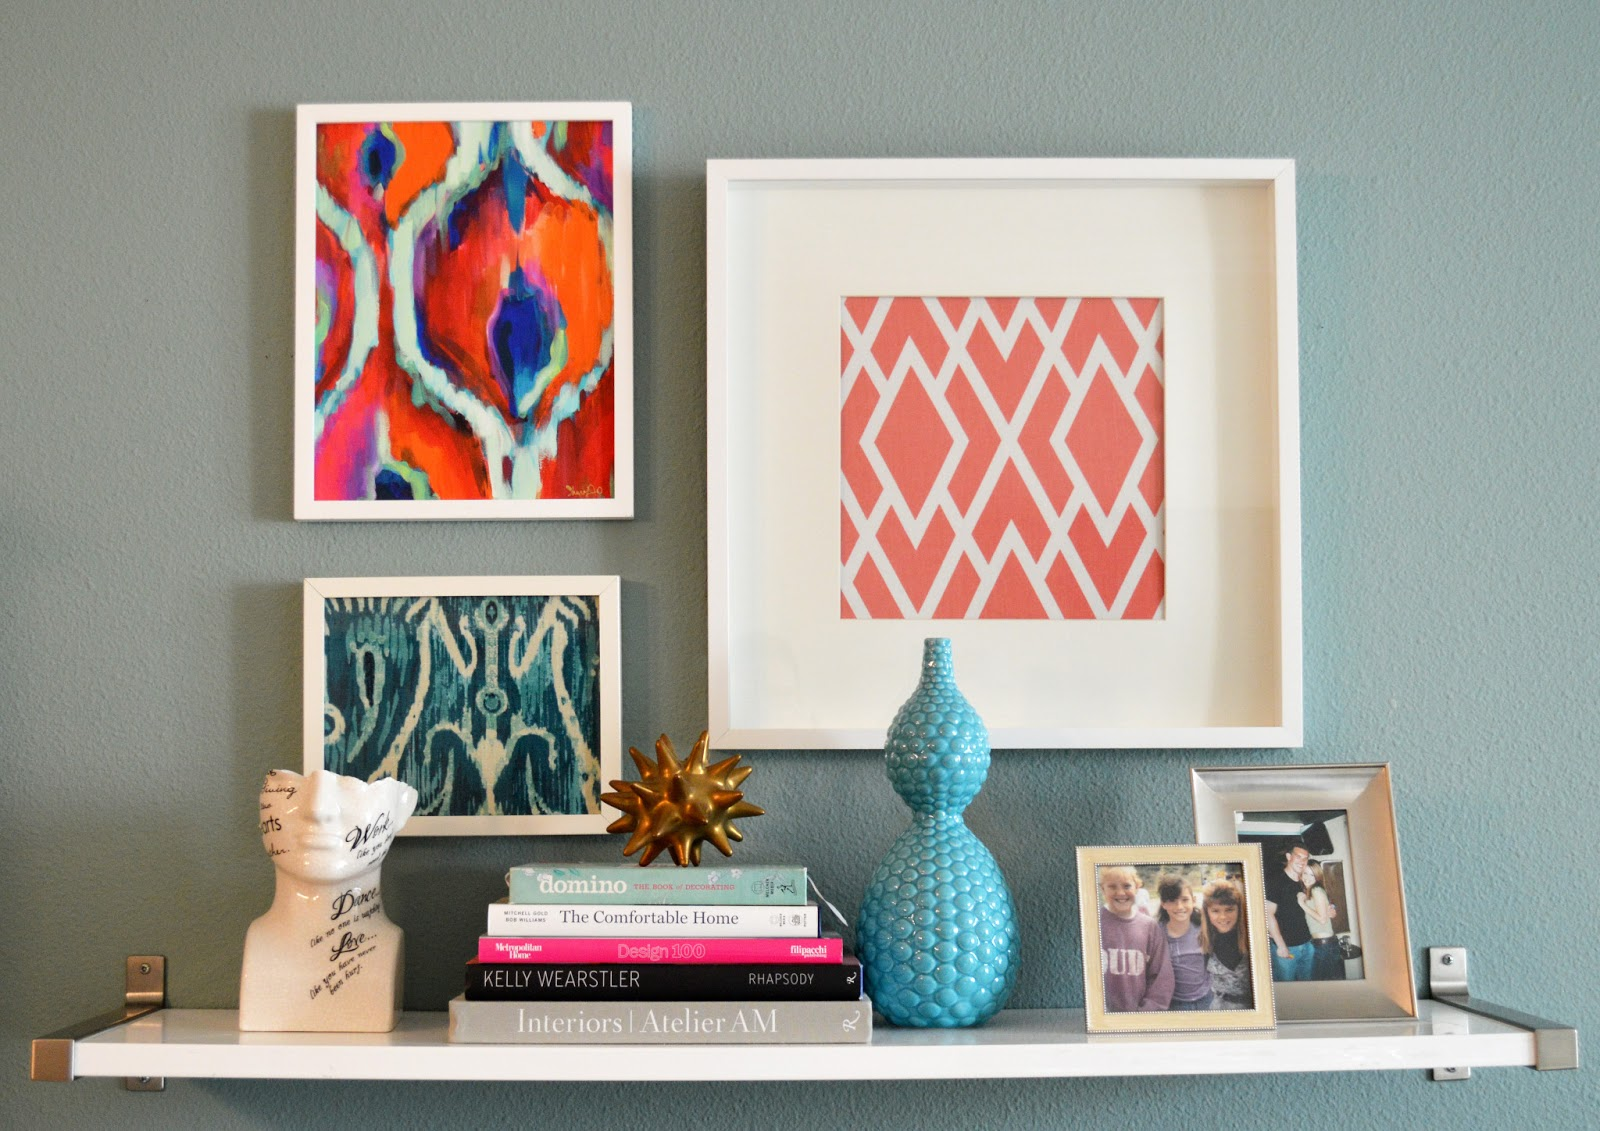 Wall Decorating Ideas And Tips For The Stunning Yet Unique